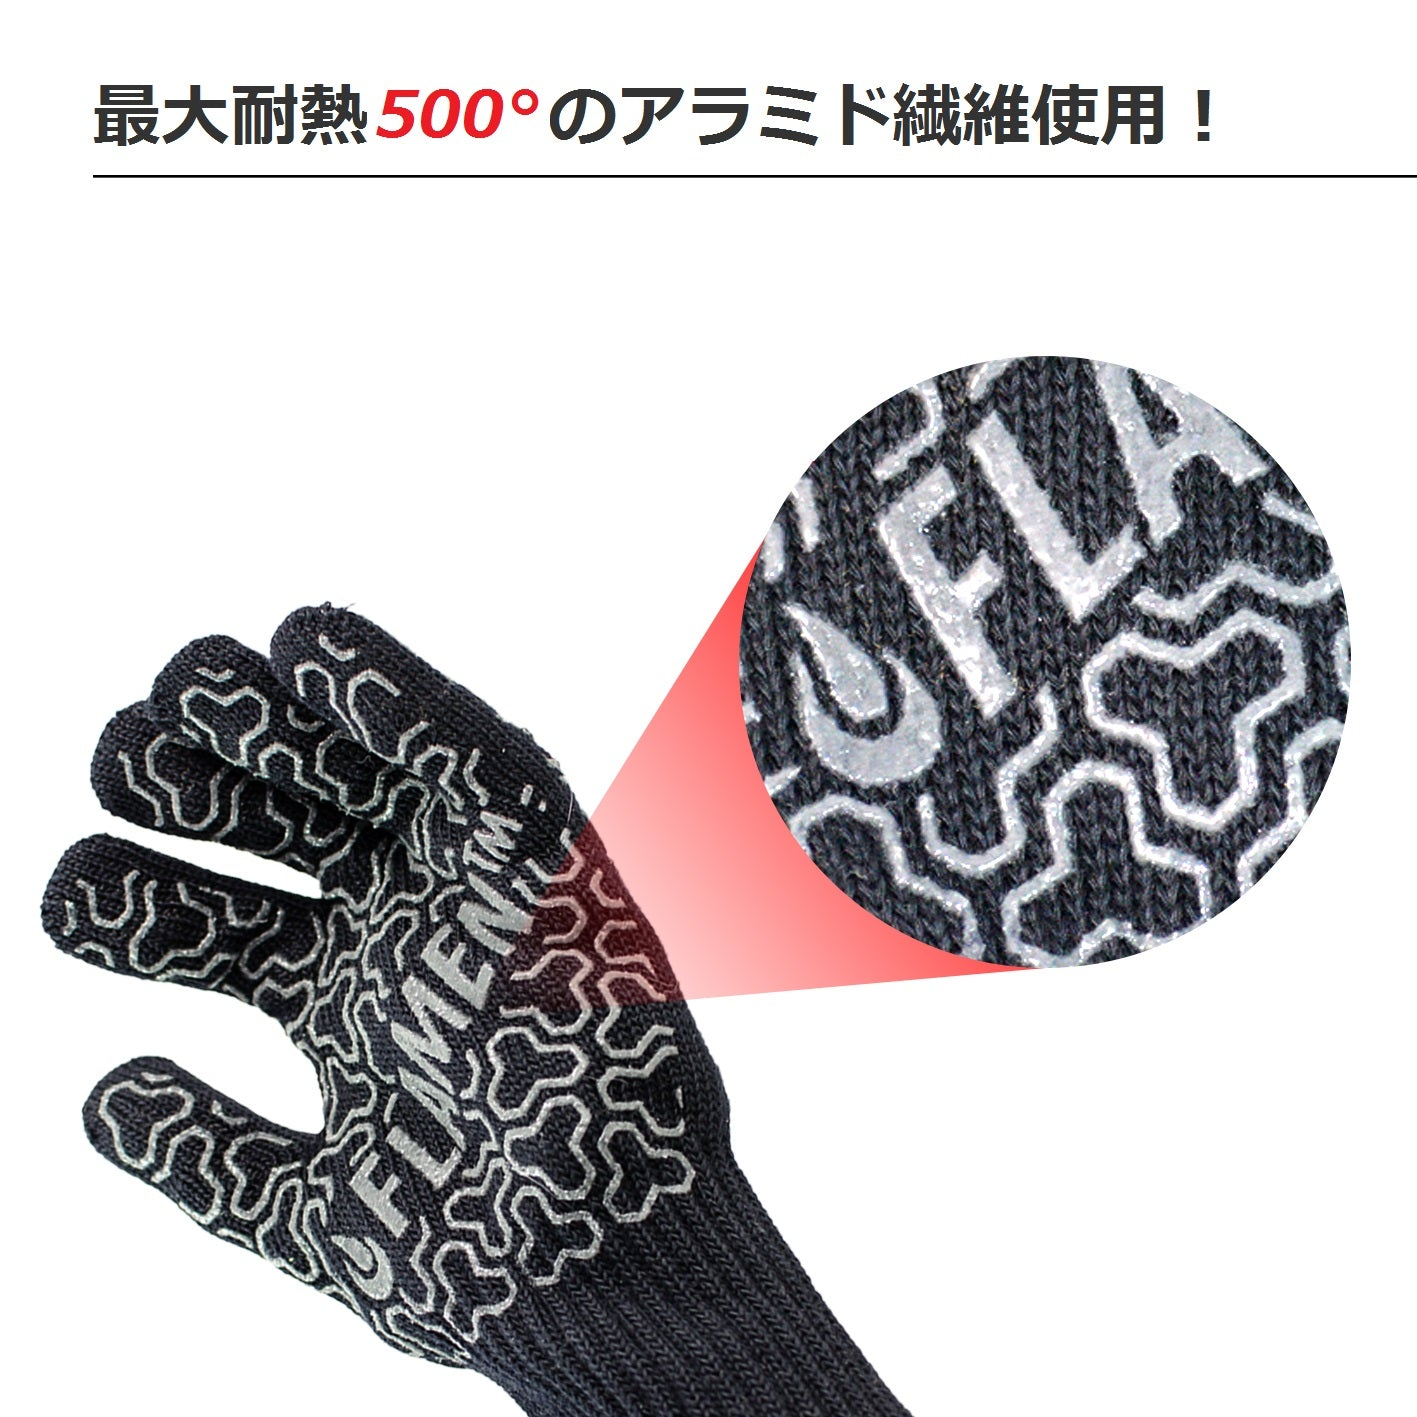 Extended-Cuff Kevlar BBQ and Fireplace Glove, Fireproof Heat ...